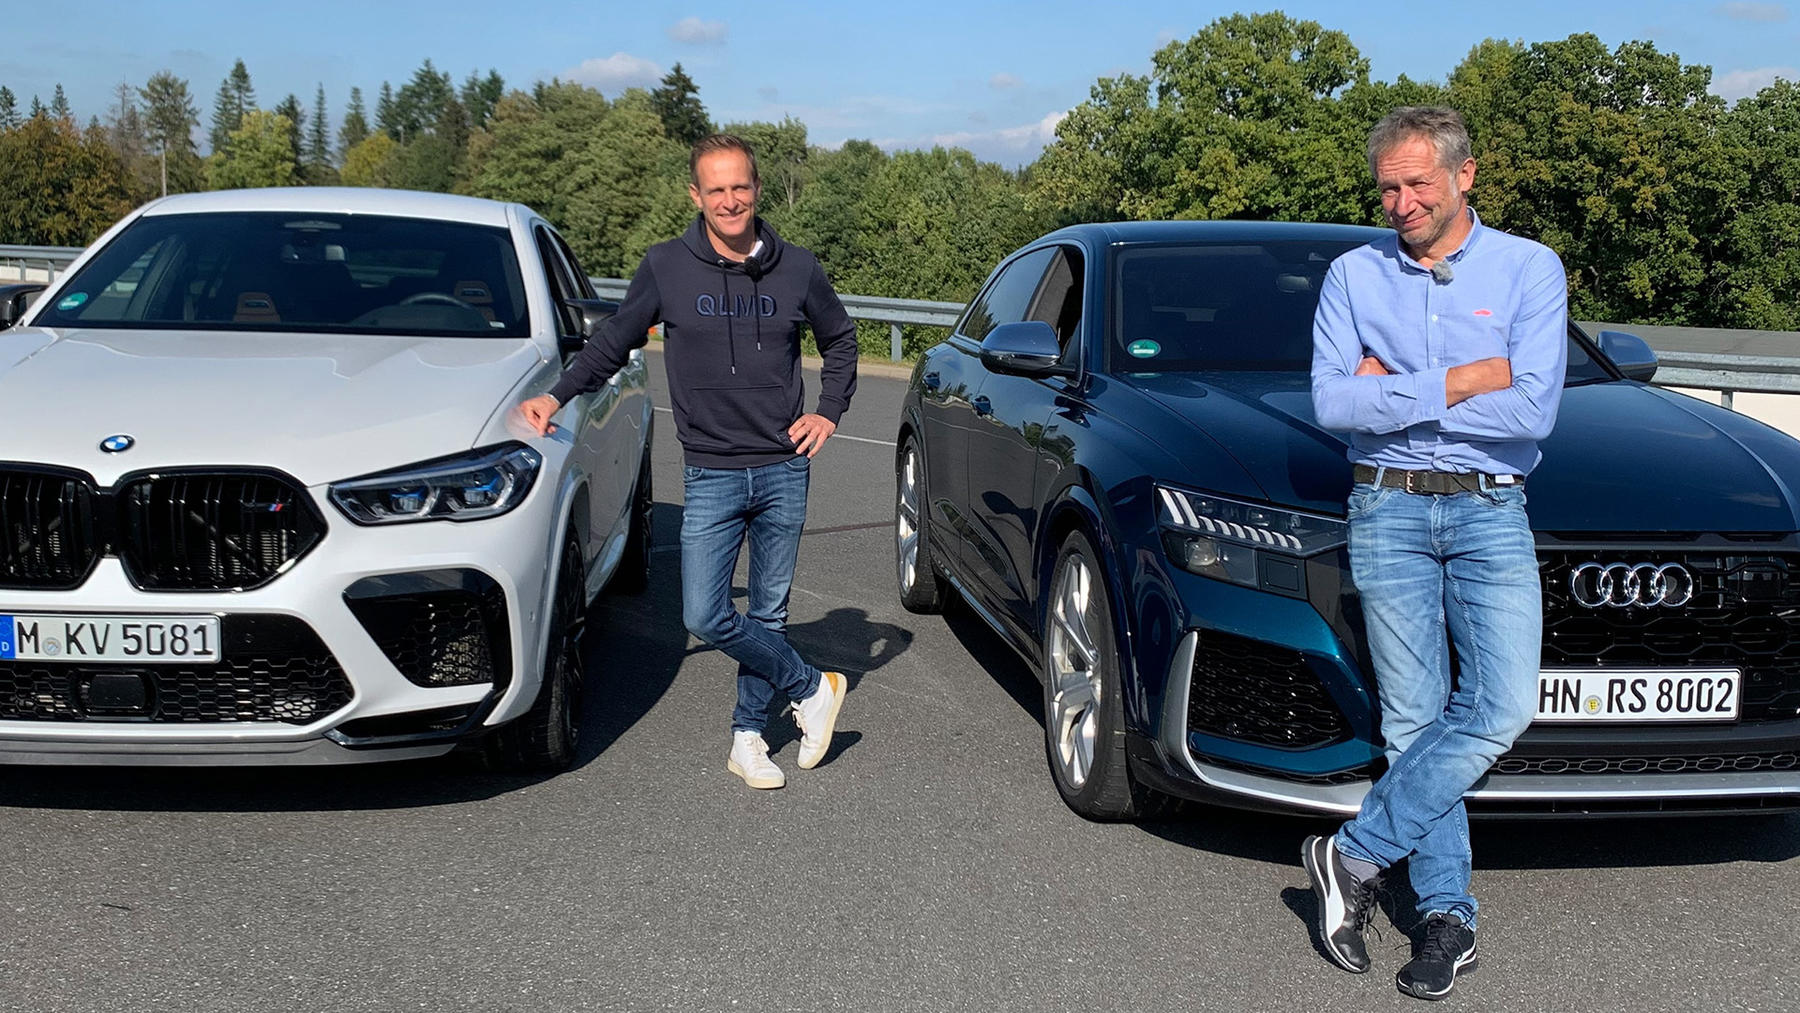 Dicke Dinger: Audi RS Q8 vs. BMW X6 M Competition